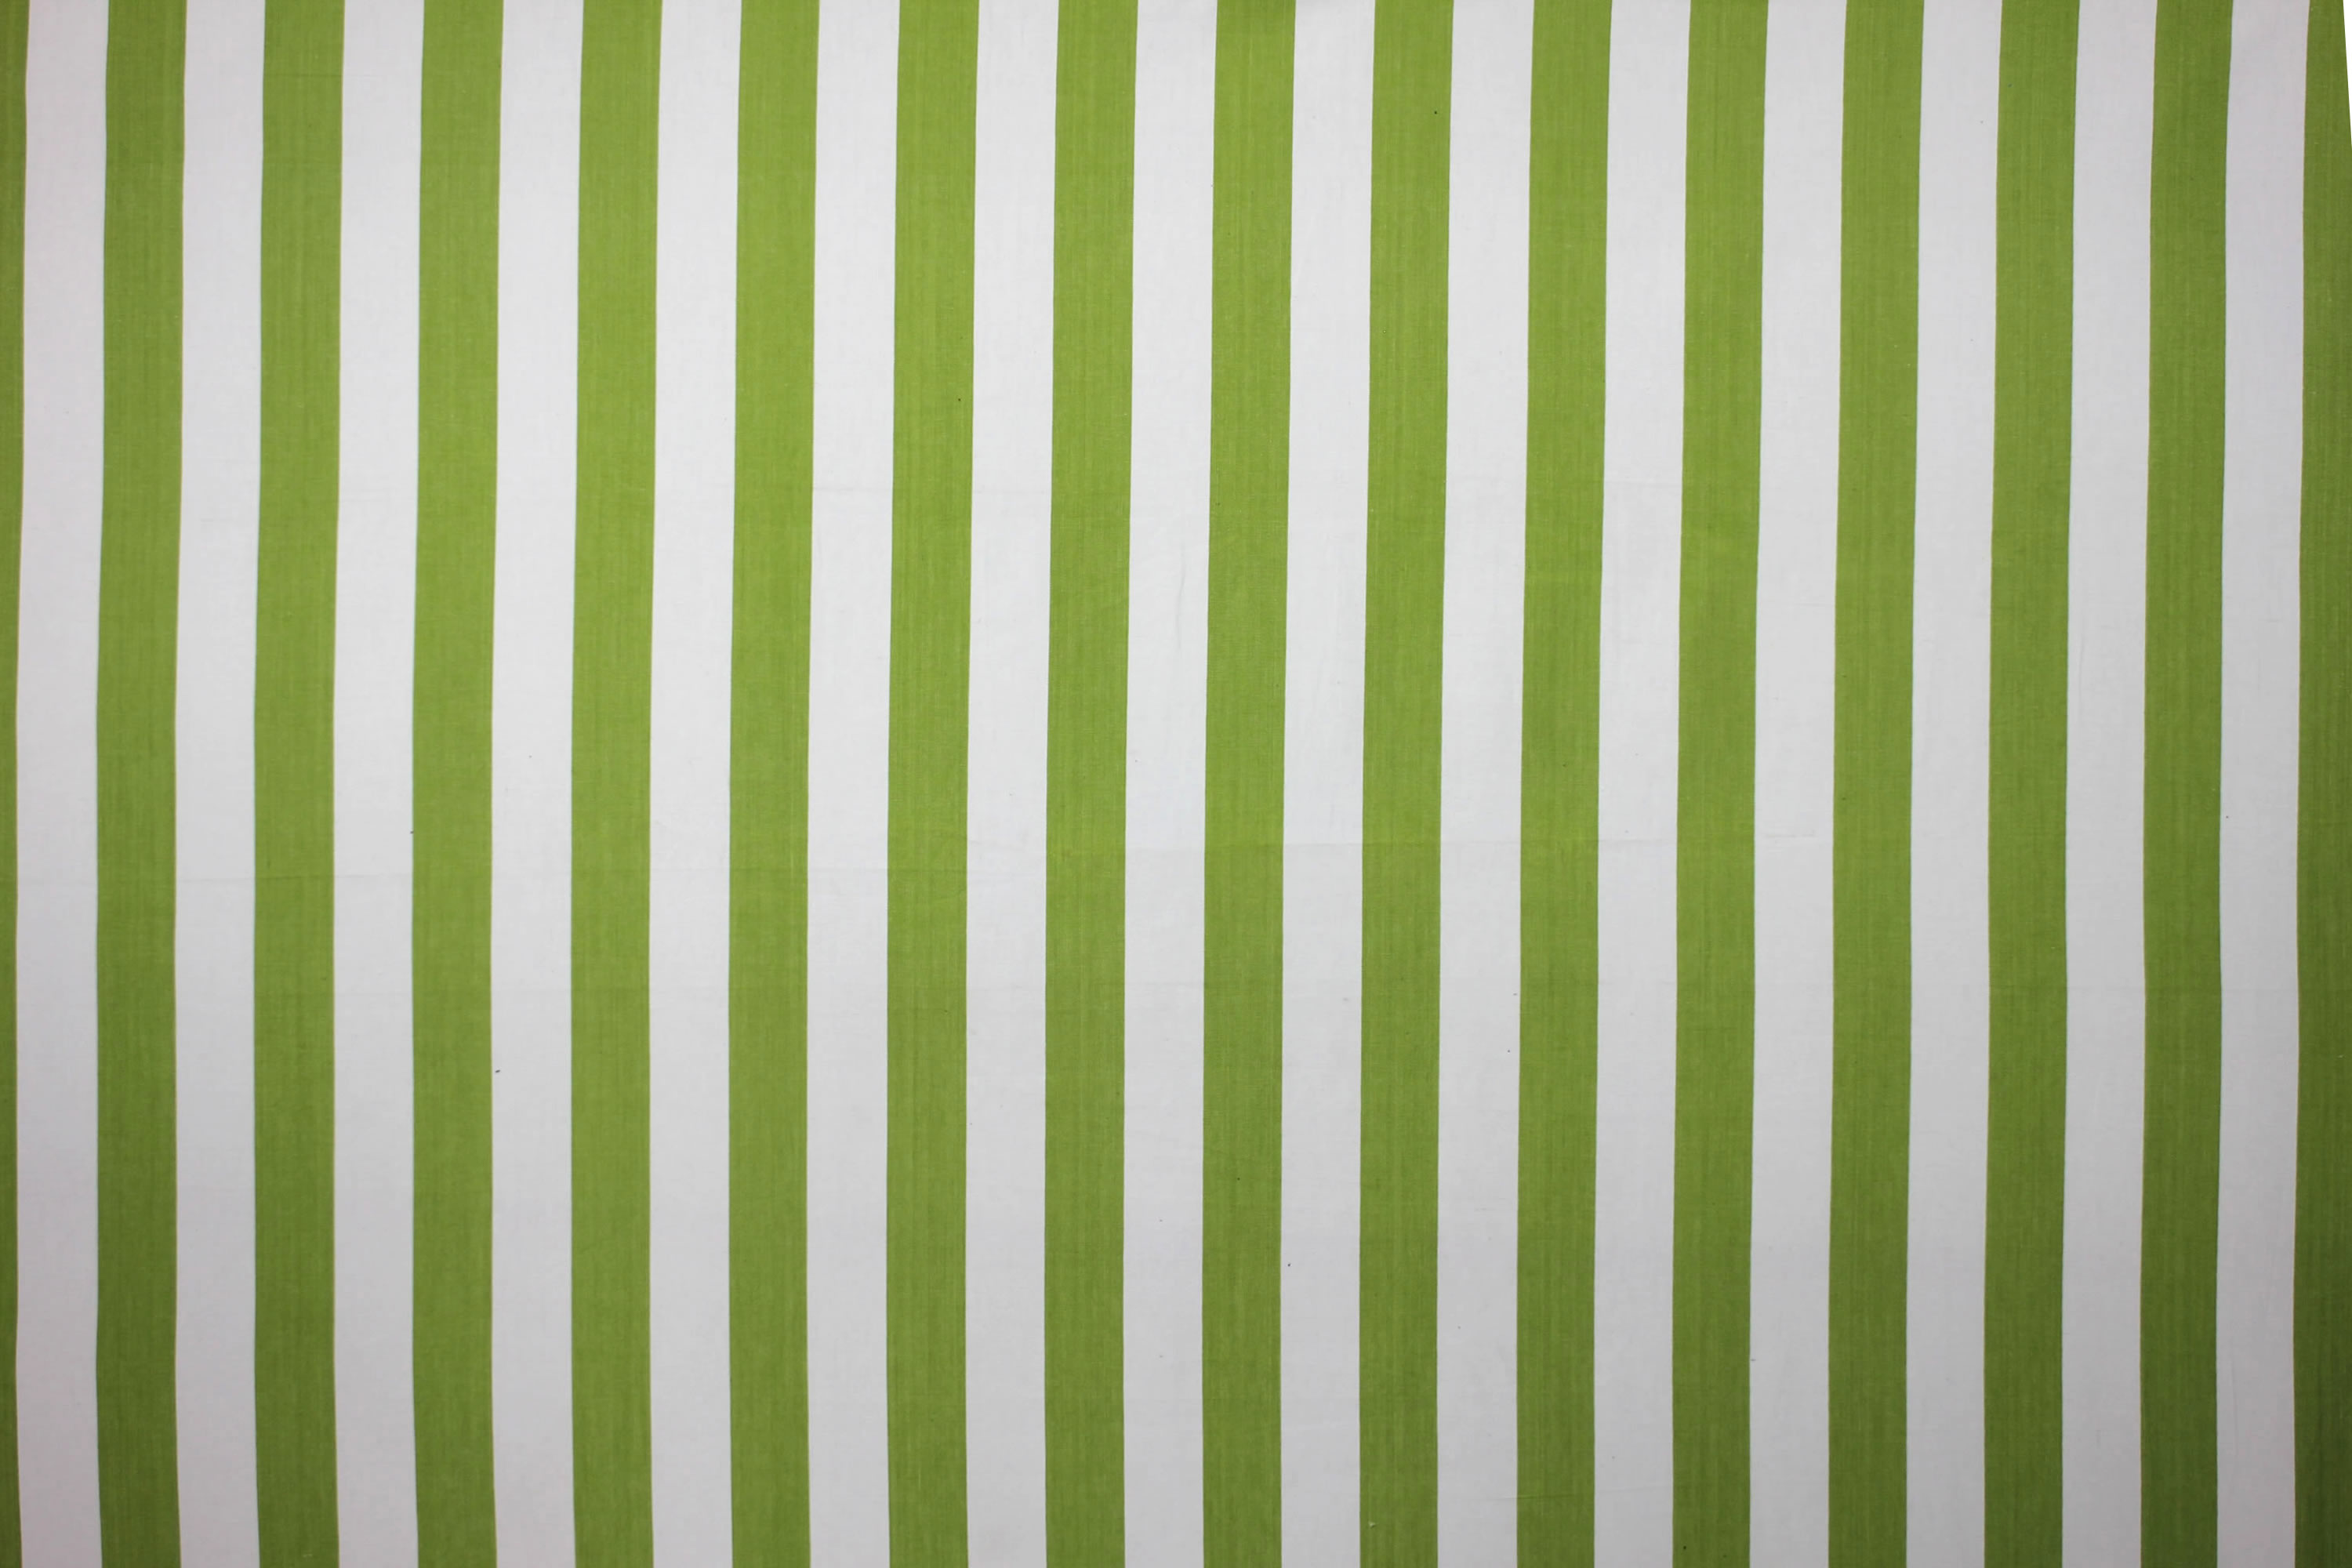 Velvet Curtain Panels Target Green and White Striped Socks